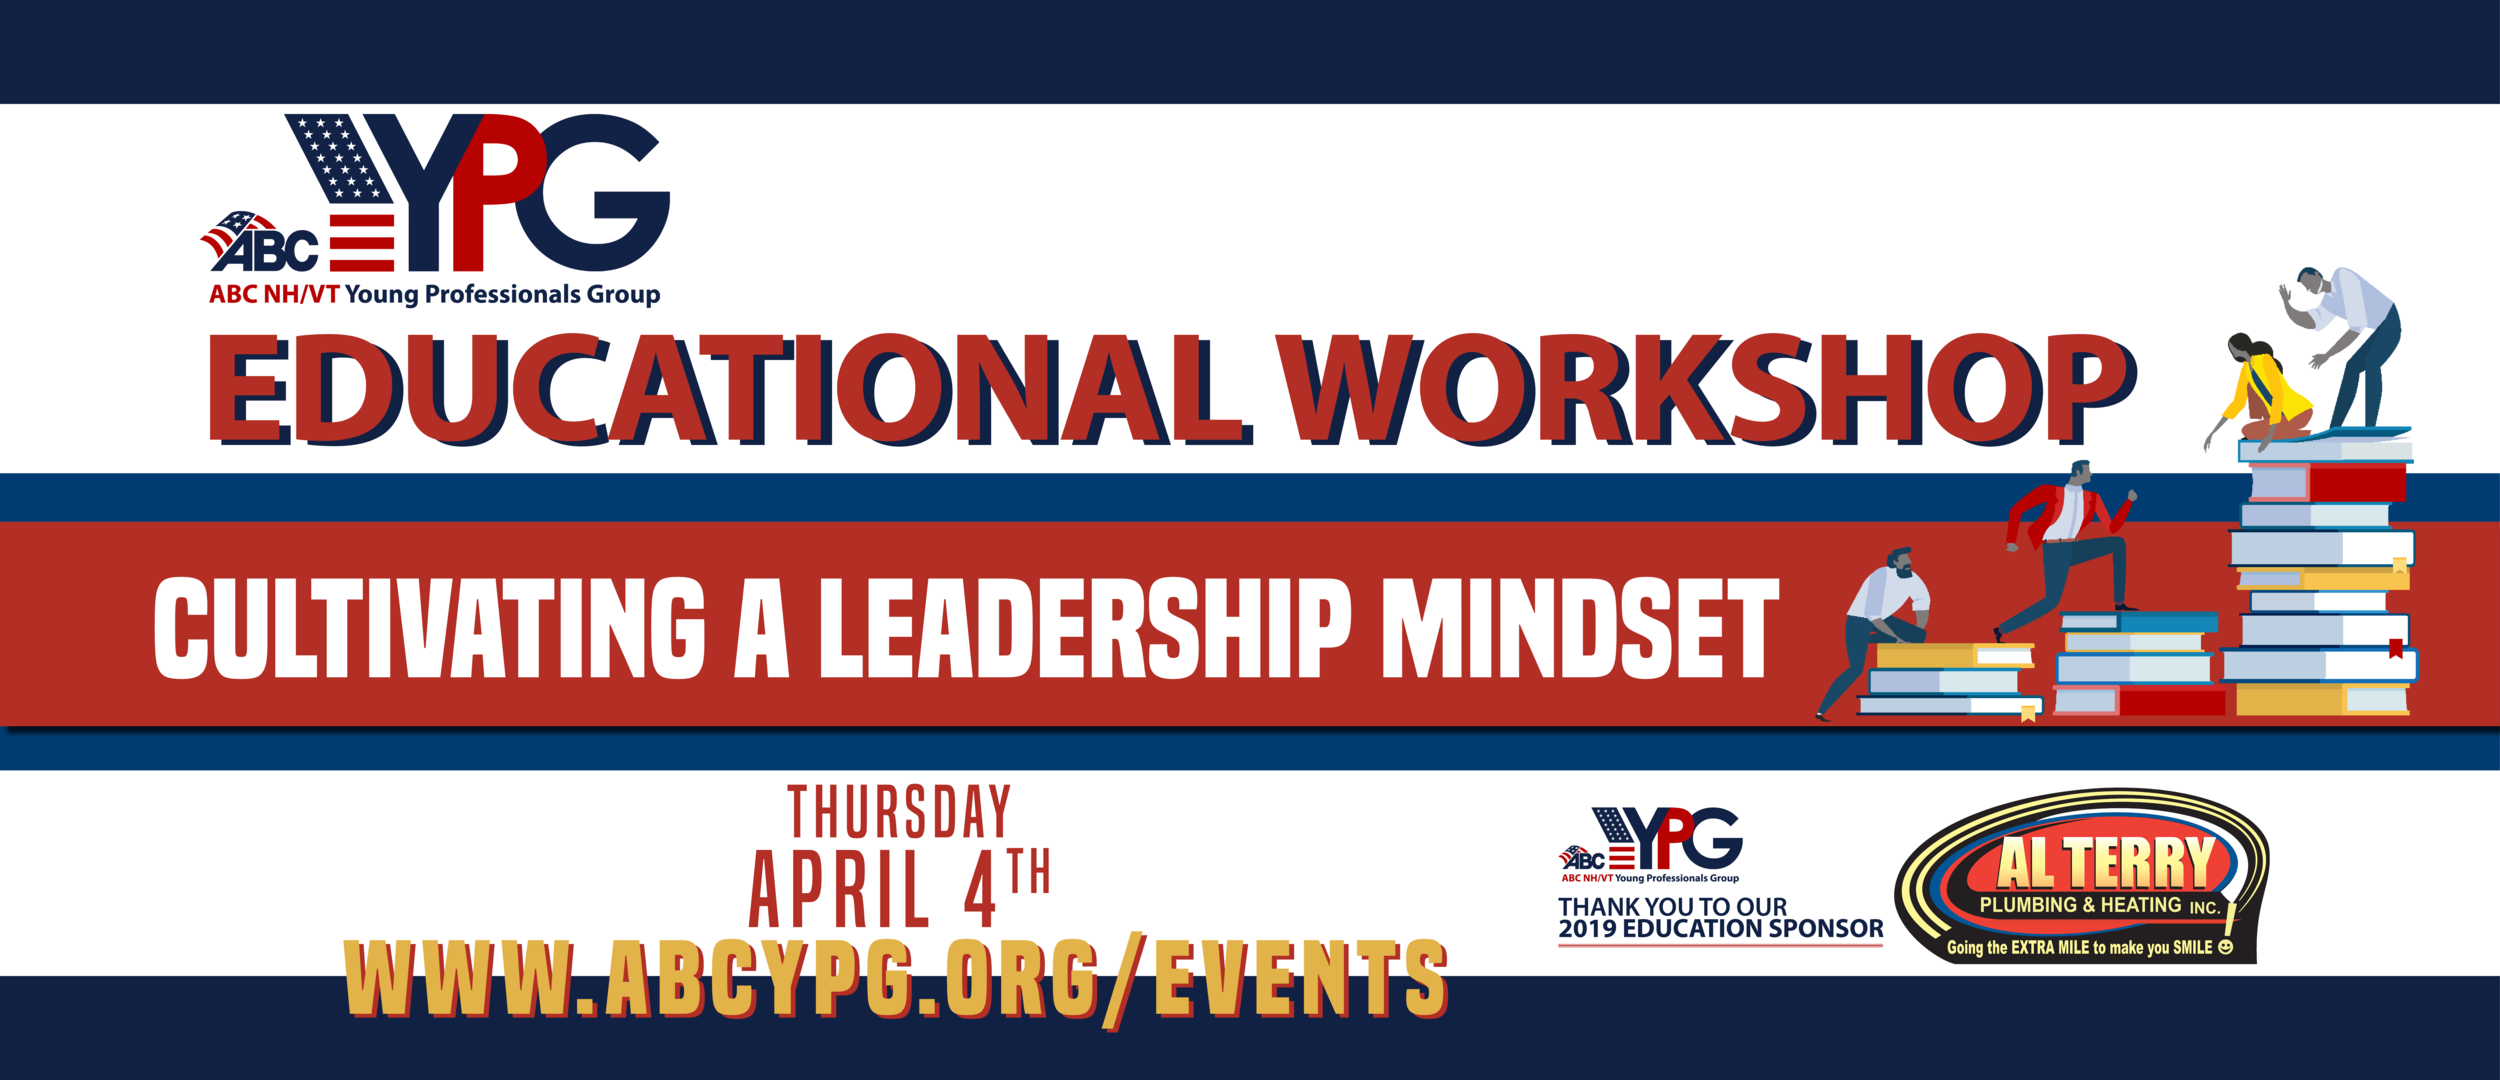 2019-04 Educational Workshop - Cultivating a Leadership Mindset - WEB MEDIA2.png